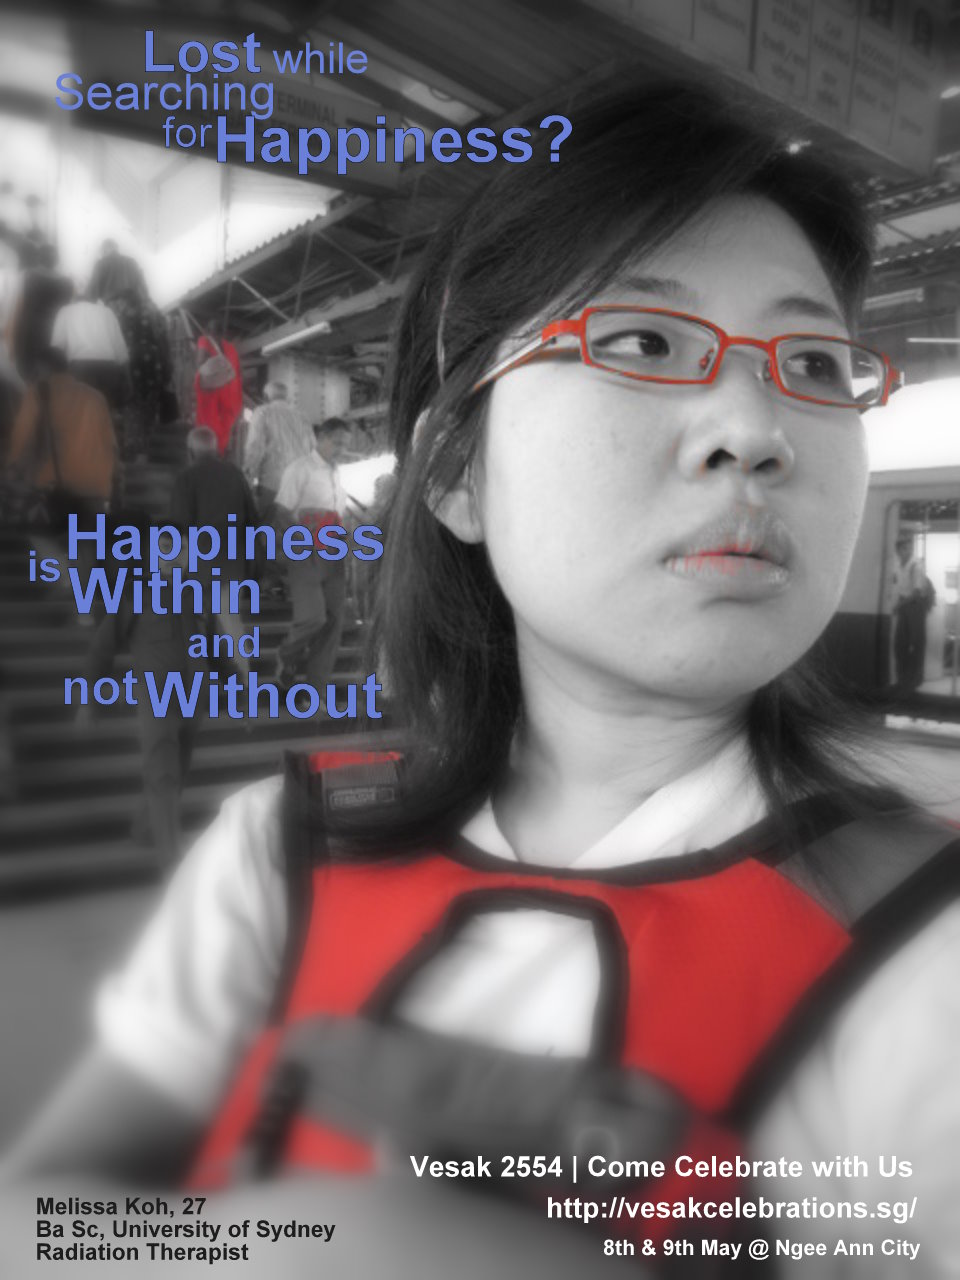 Lost while Searching for Happiness